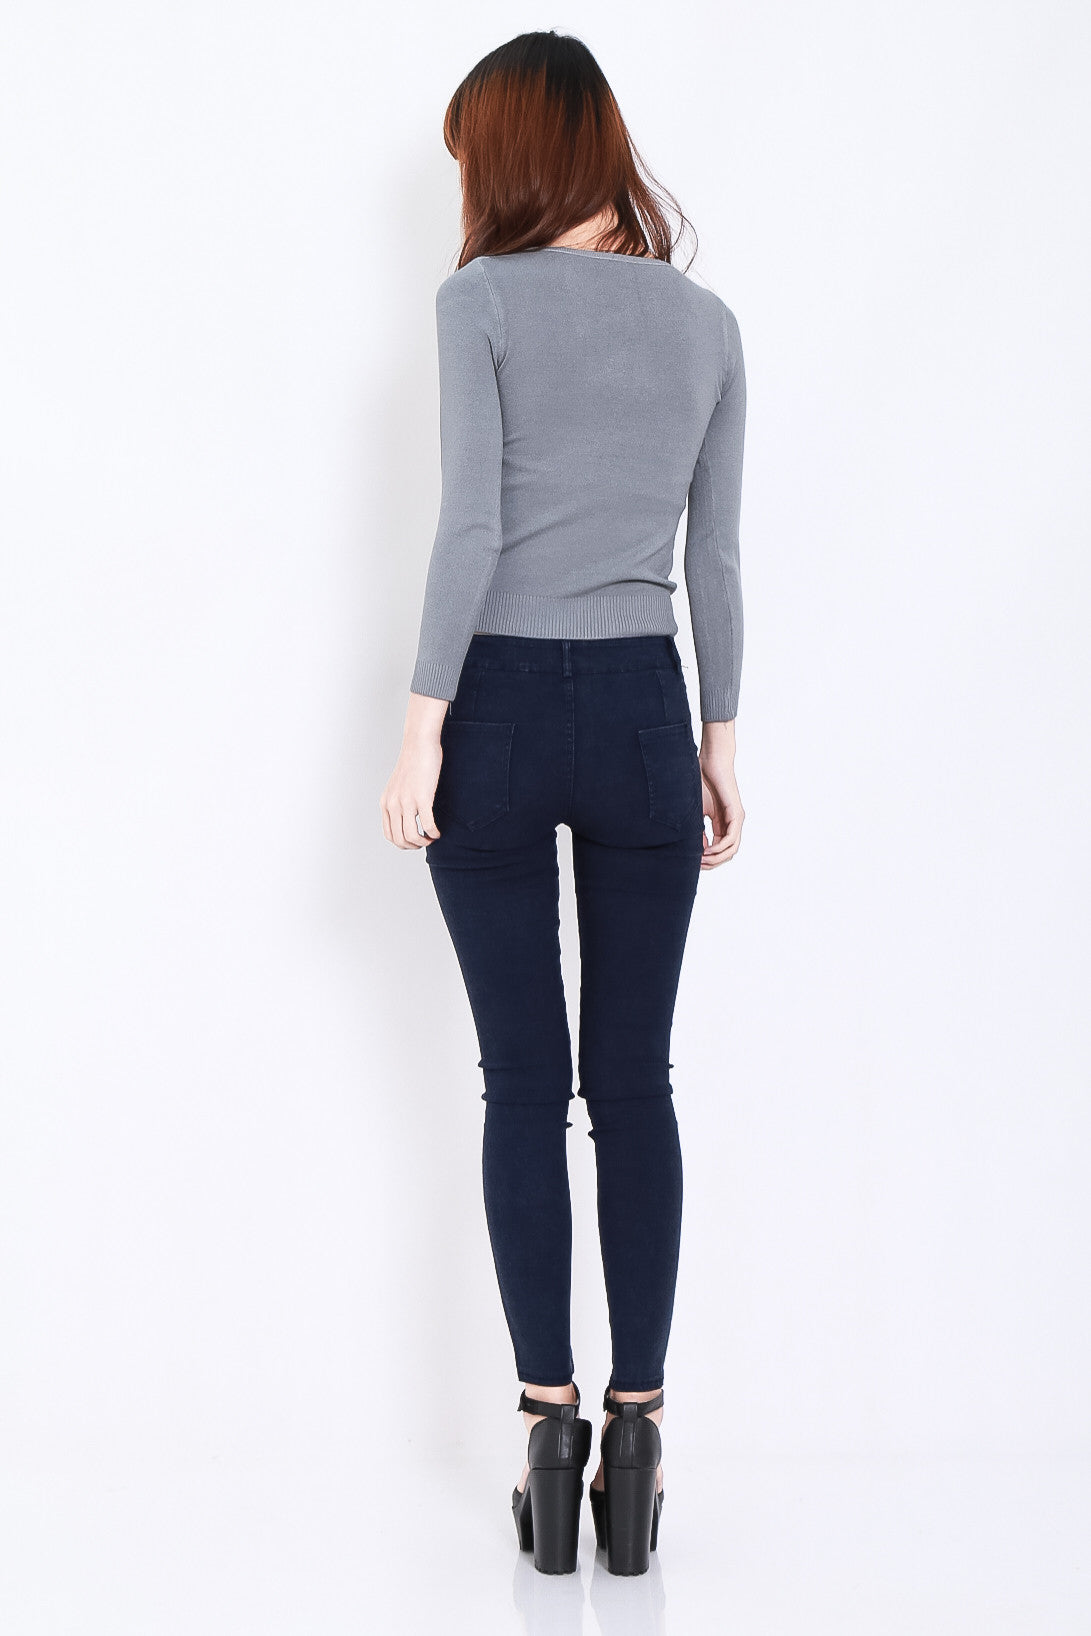 (RESTOCKED) STAY CLOSE SLIT JEGGINGS IN NAVY - TOPAZETTE